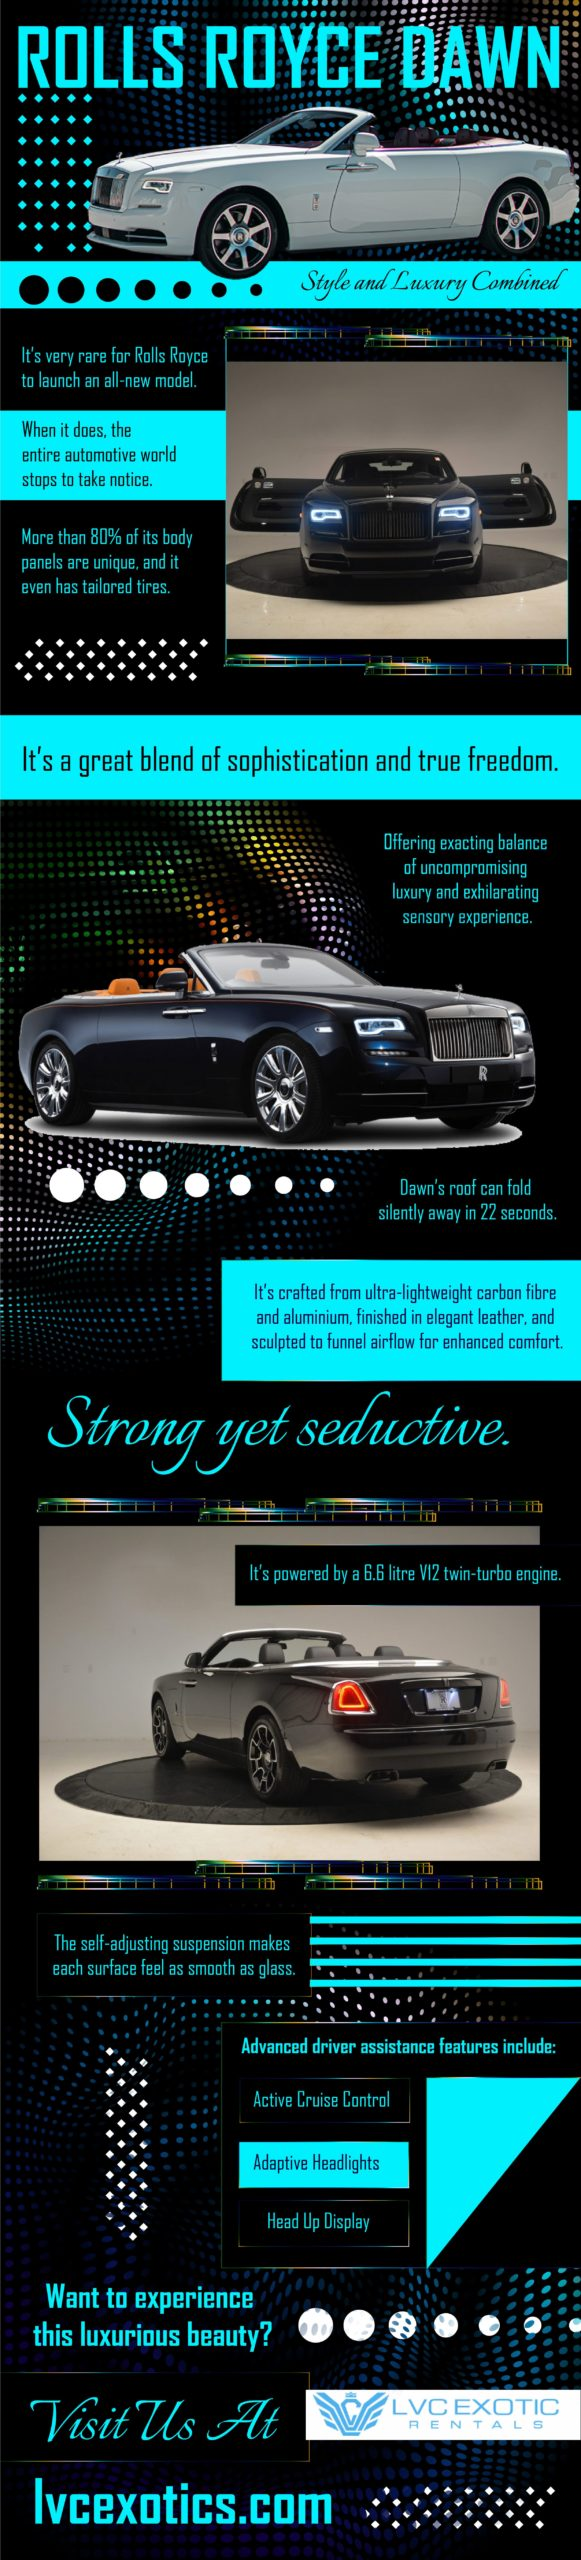 Style and design of rolls royce dawn